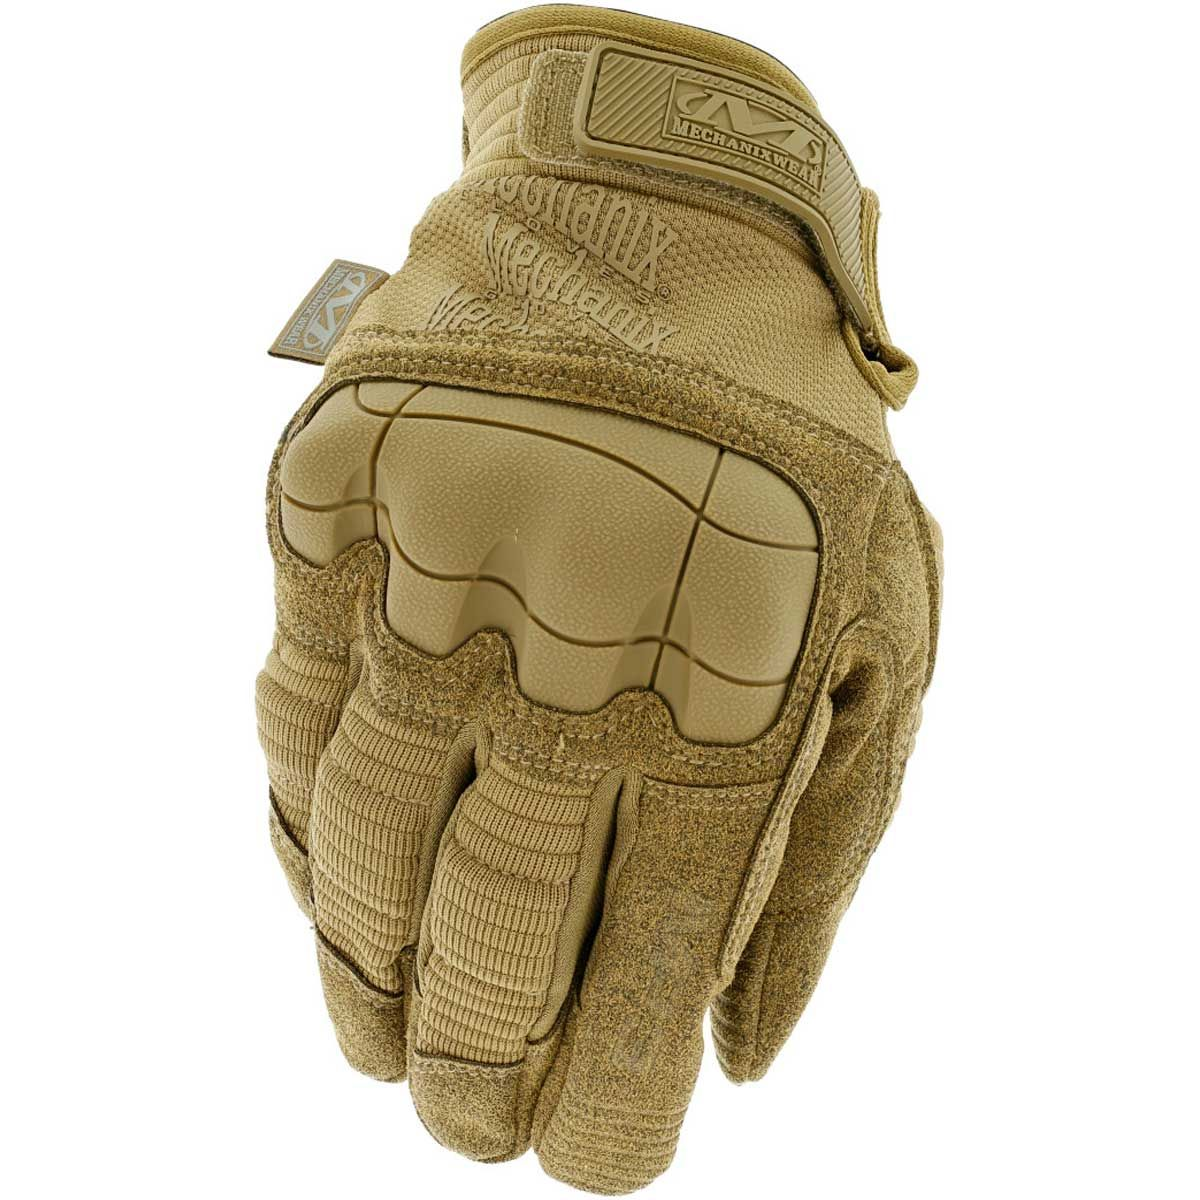 MITAINES MECHANIX M-PACT MILITAIRE PAINTBALL TACTIQUE AIRSOFT COMBAT ARMEE